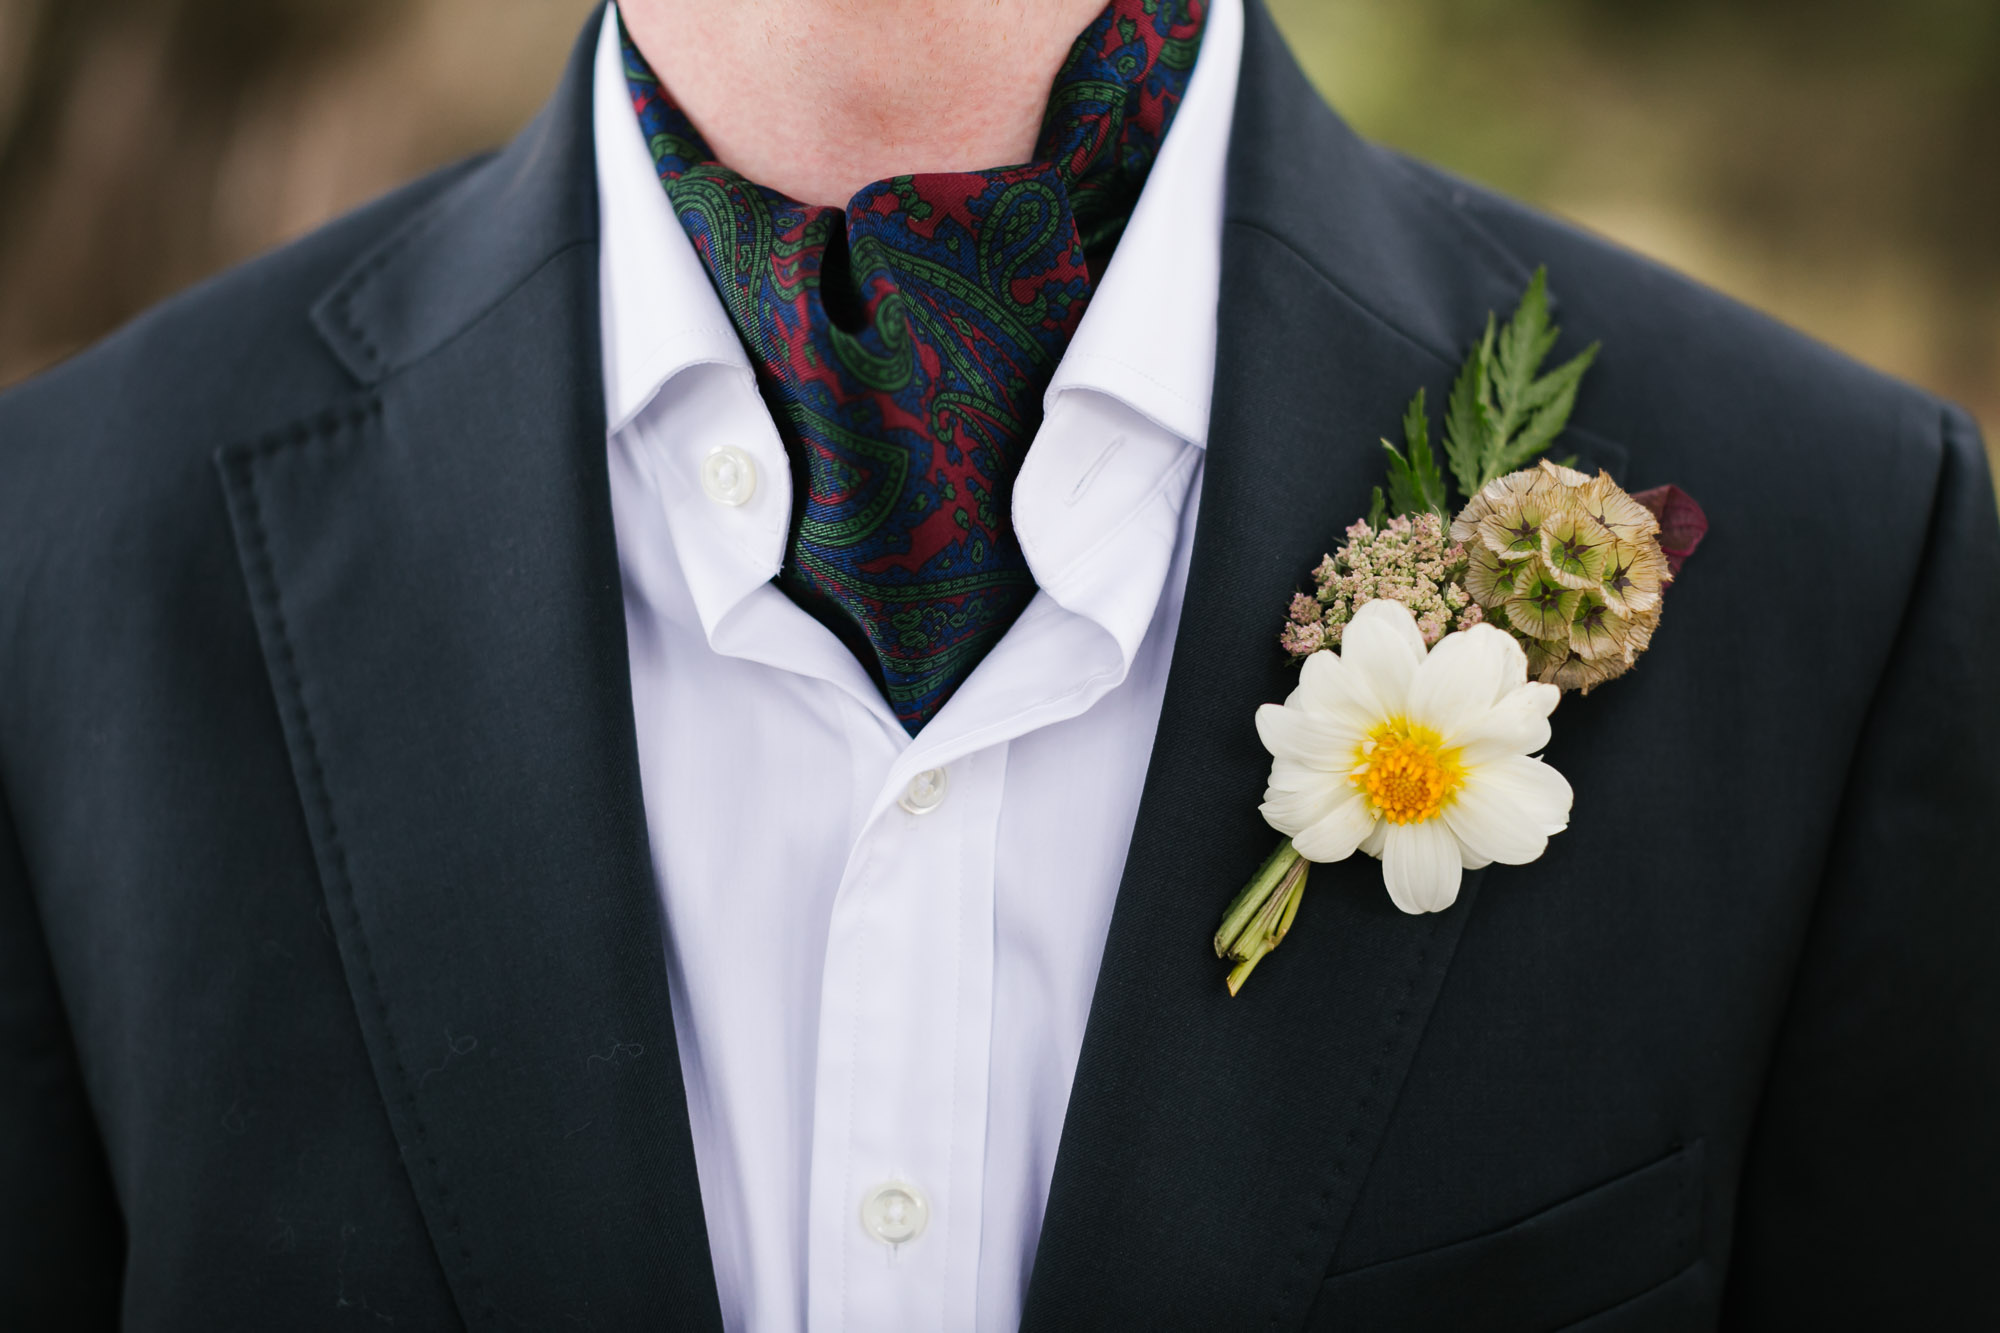 Groom's wedding suit with paisley ascot and boutonniere